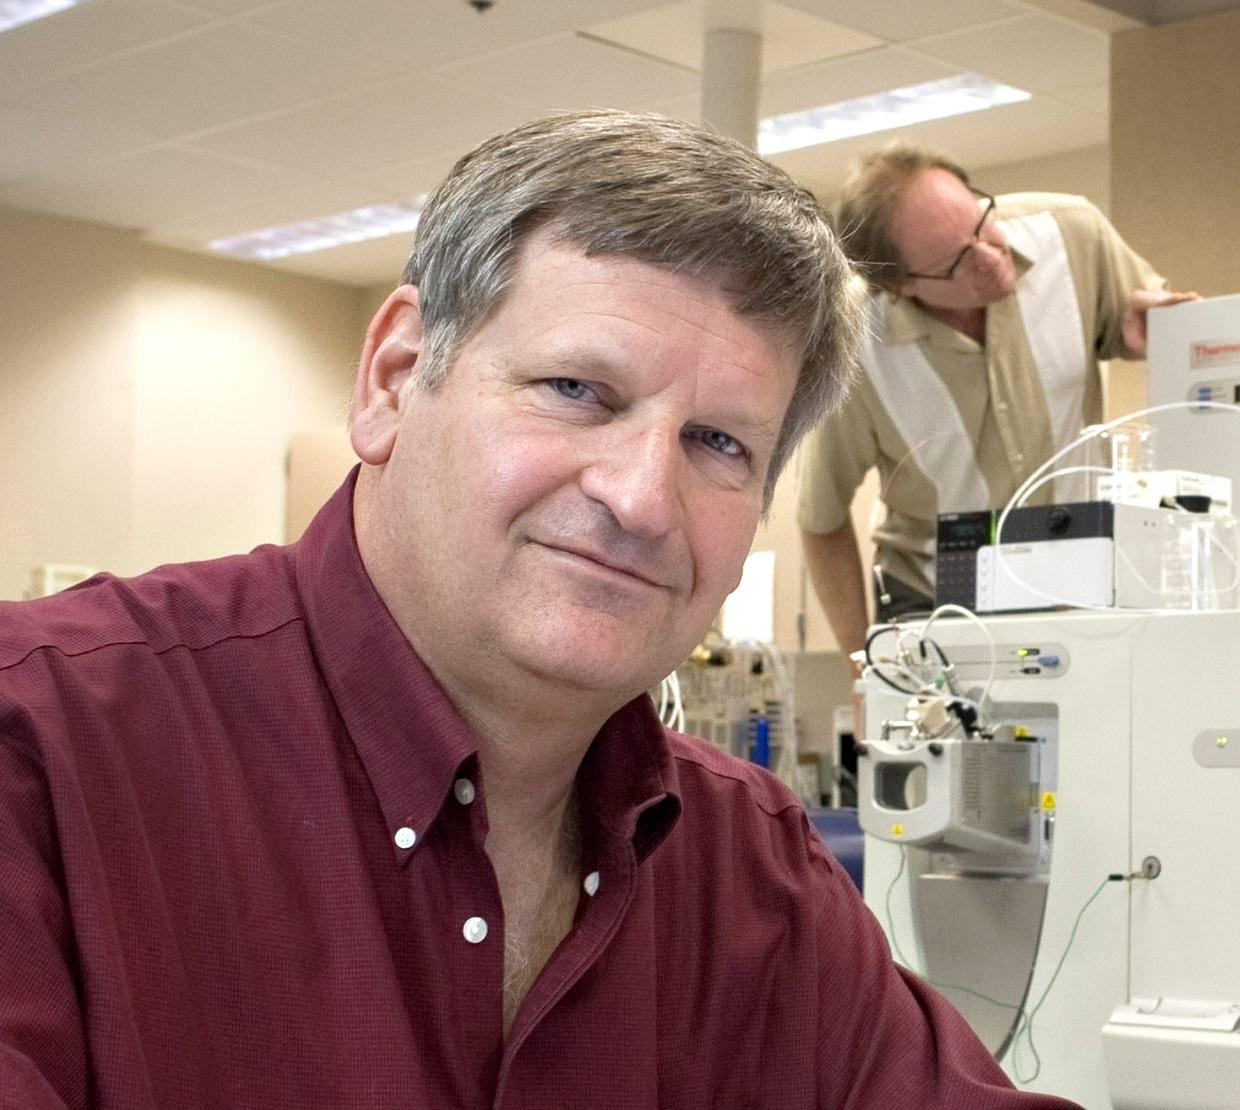 Joe Beckman in his lab with colleagues